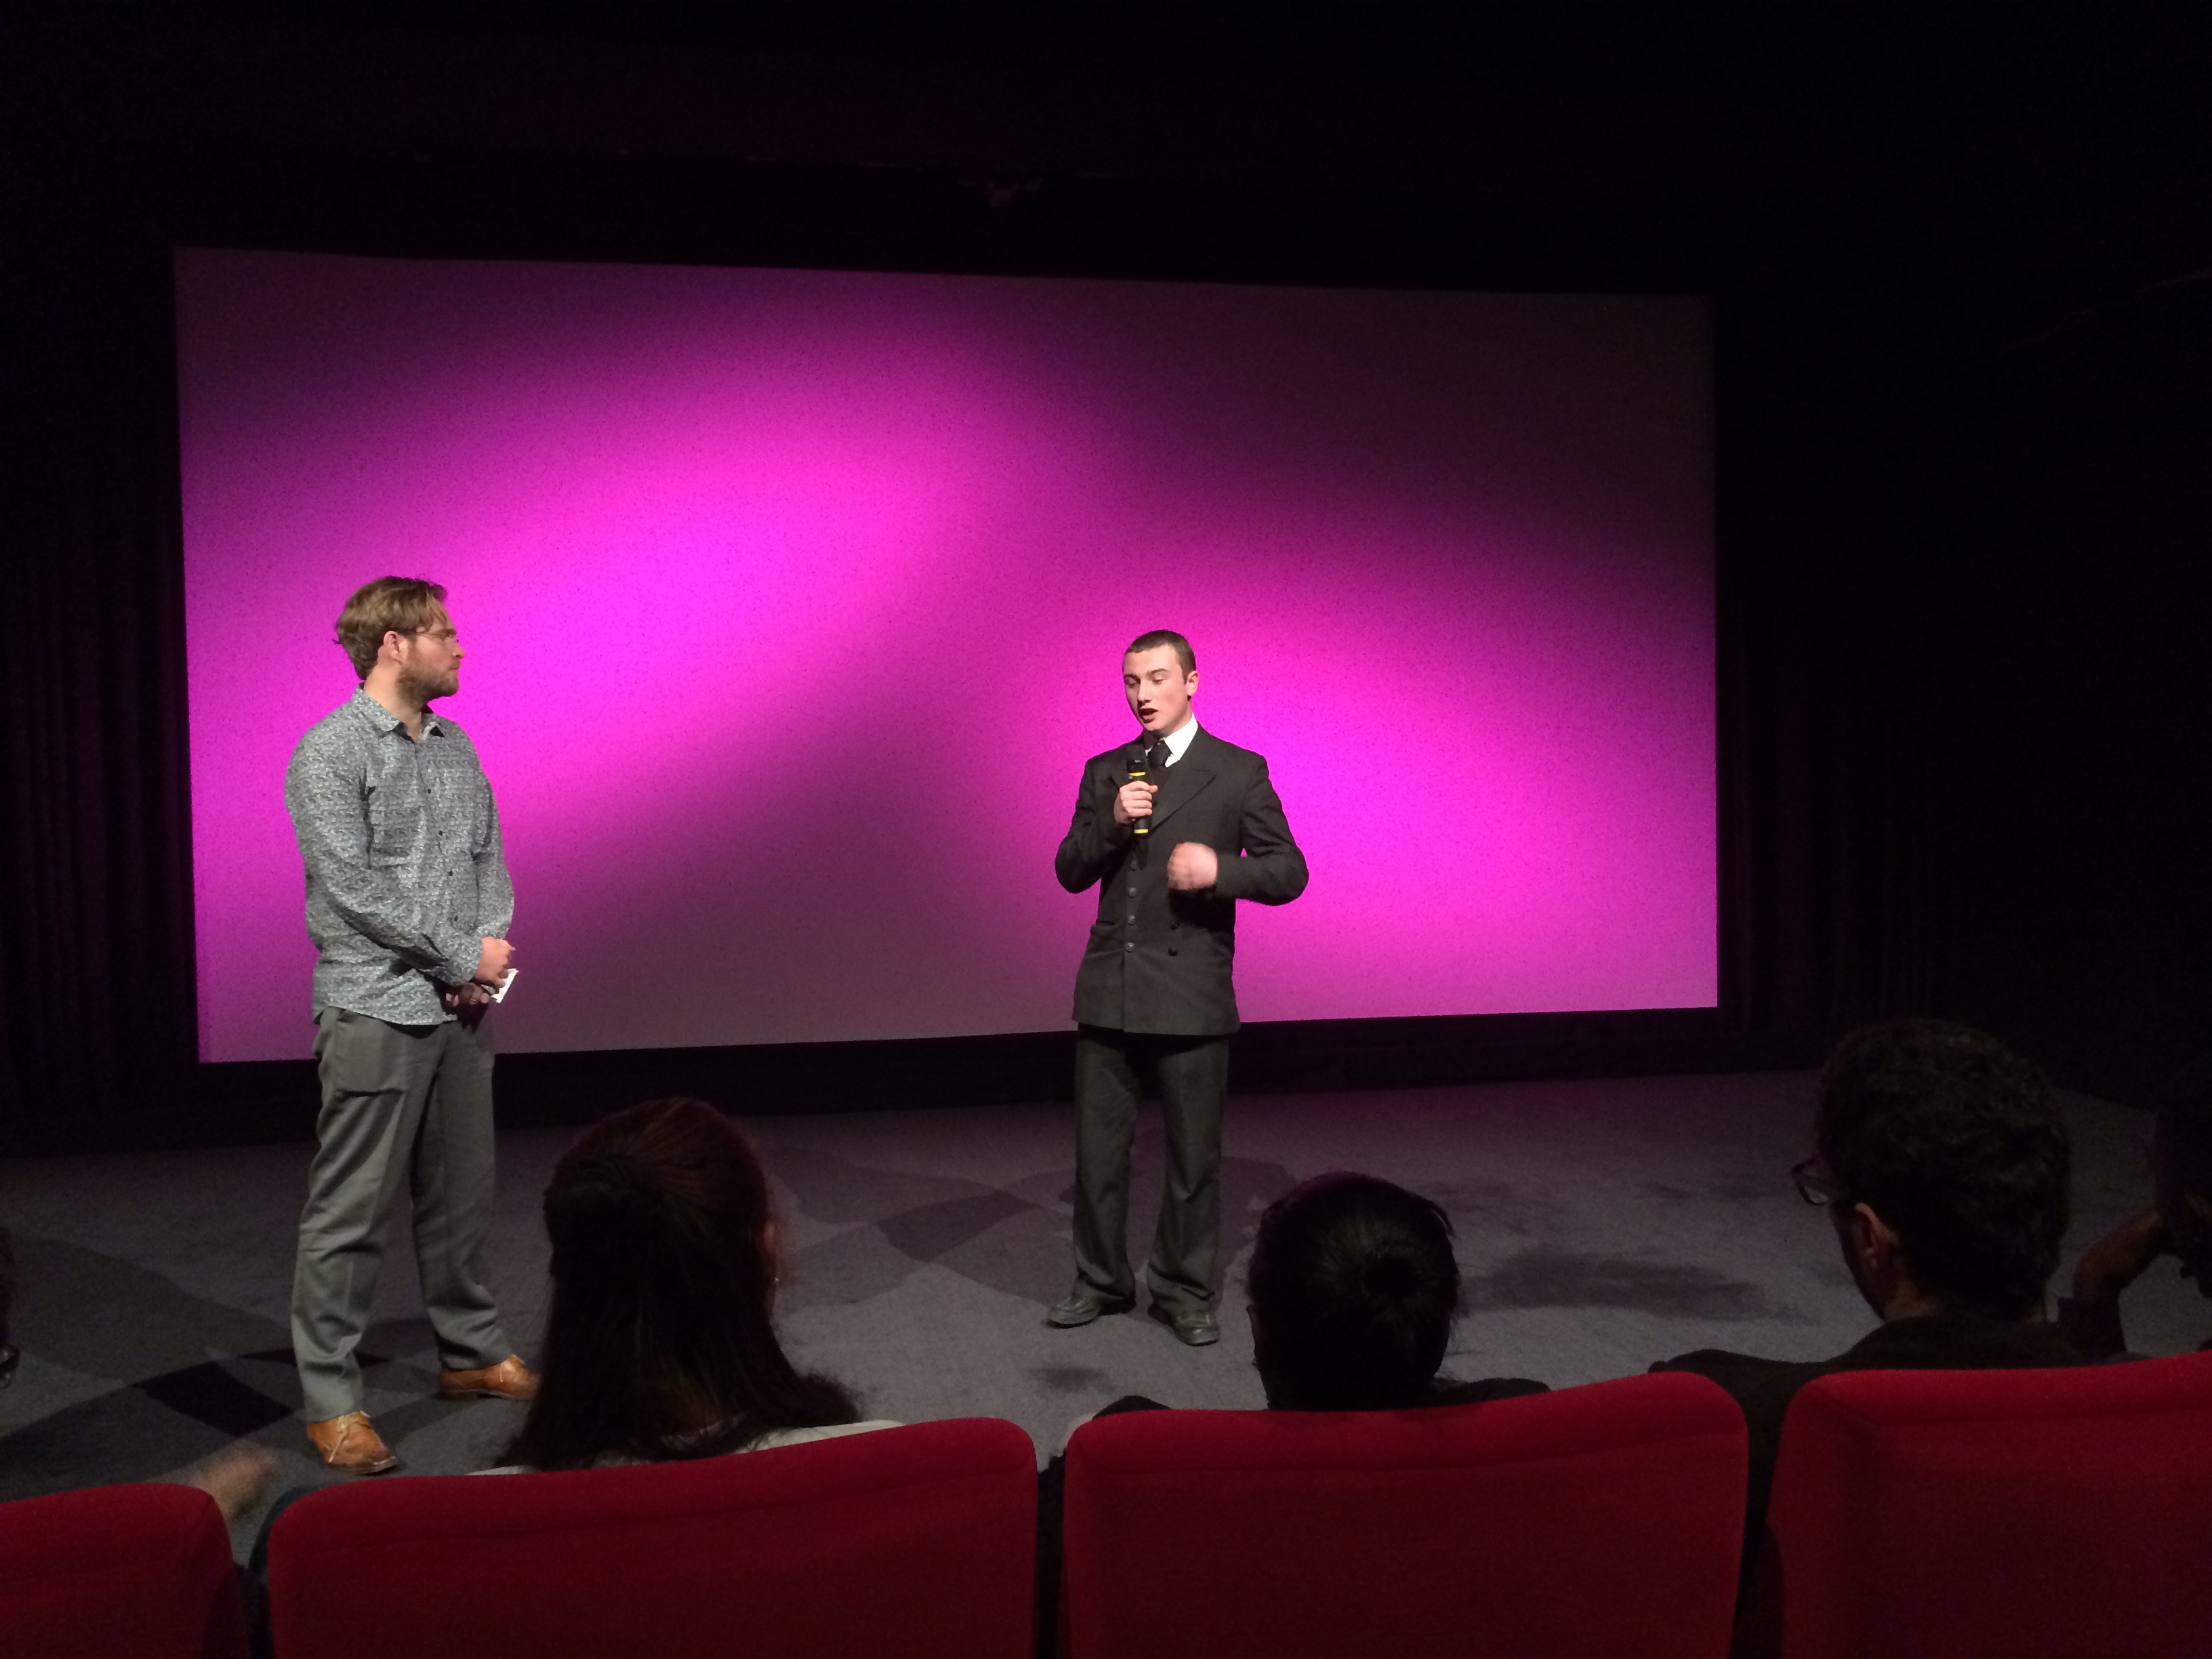 Mark represented the Year 11 students at the film's premiere at the BFI Southbank where he single-handedly handled the 30 minute Q&A